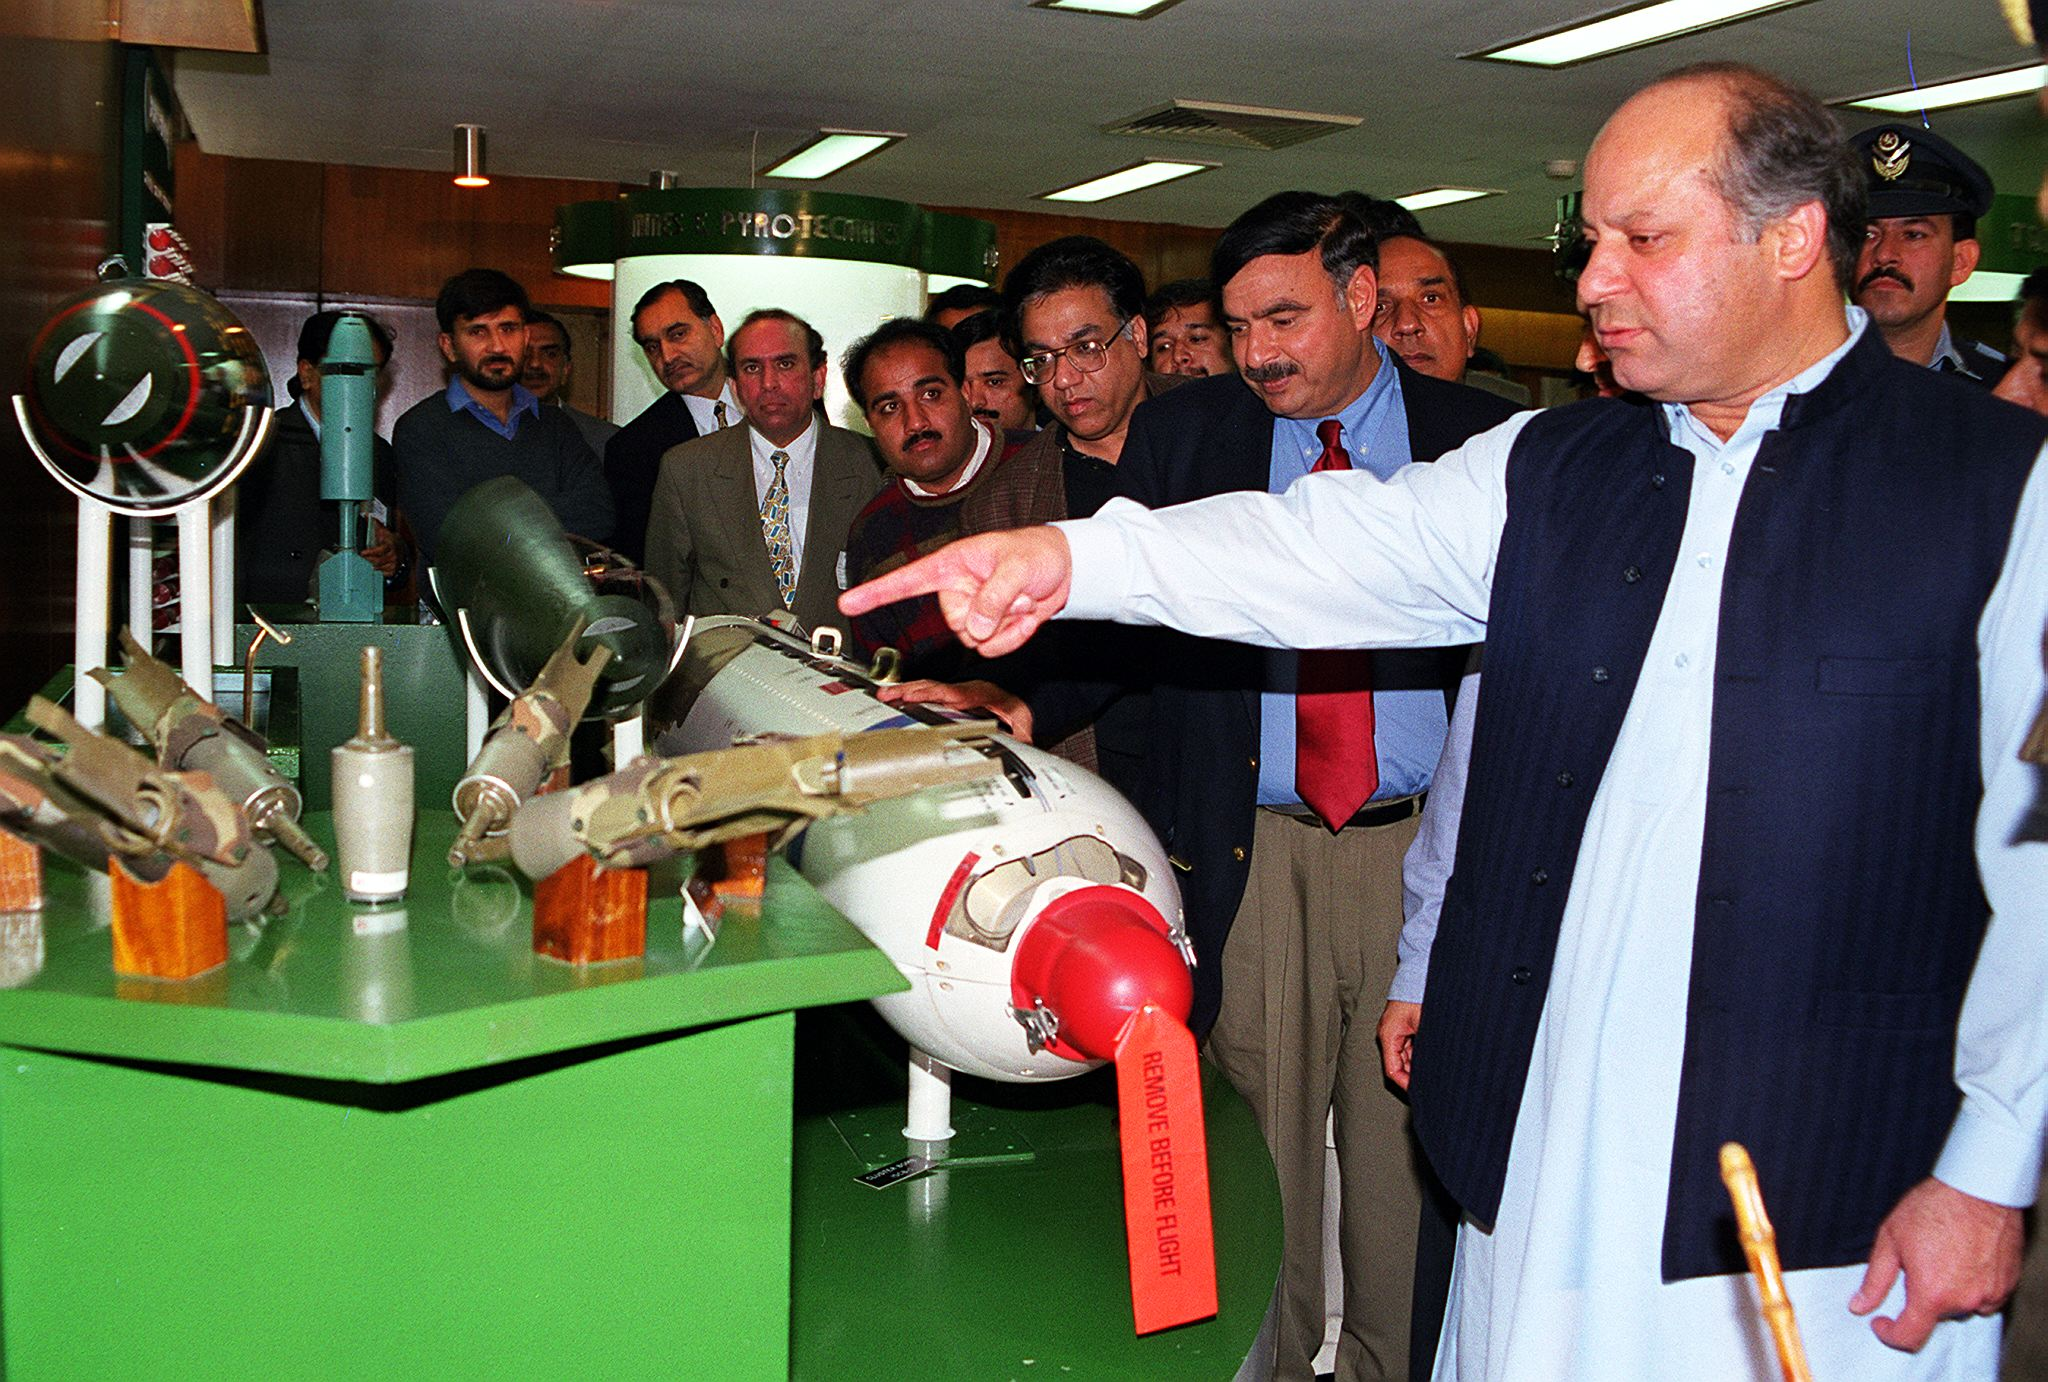 Prime Minister Nawaz Sharif (R) inspects medium range missiles and other weapons manufactured in Wah Ordnance Factory, some 40 kilometres from Islamabad, 25 February. Sharif said Pakistan's defence had been made impregnable through acquisition of nuclear capability. He said no enemy could dare attack Pakistan as every one was aware that it was a nuclear power now. — Photo by AFP/File